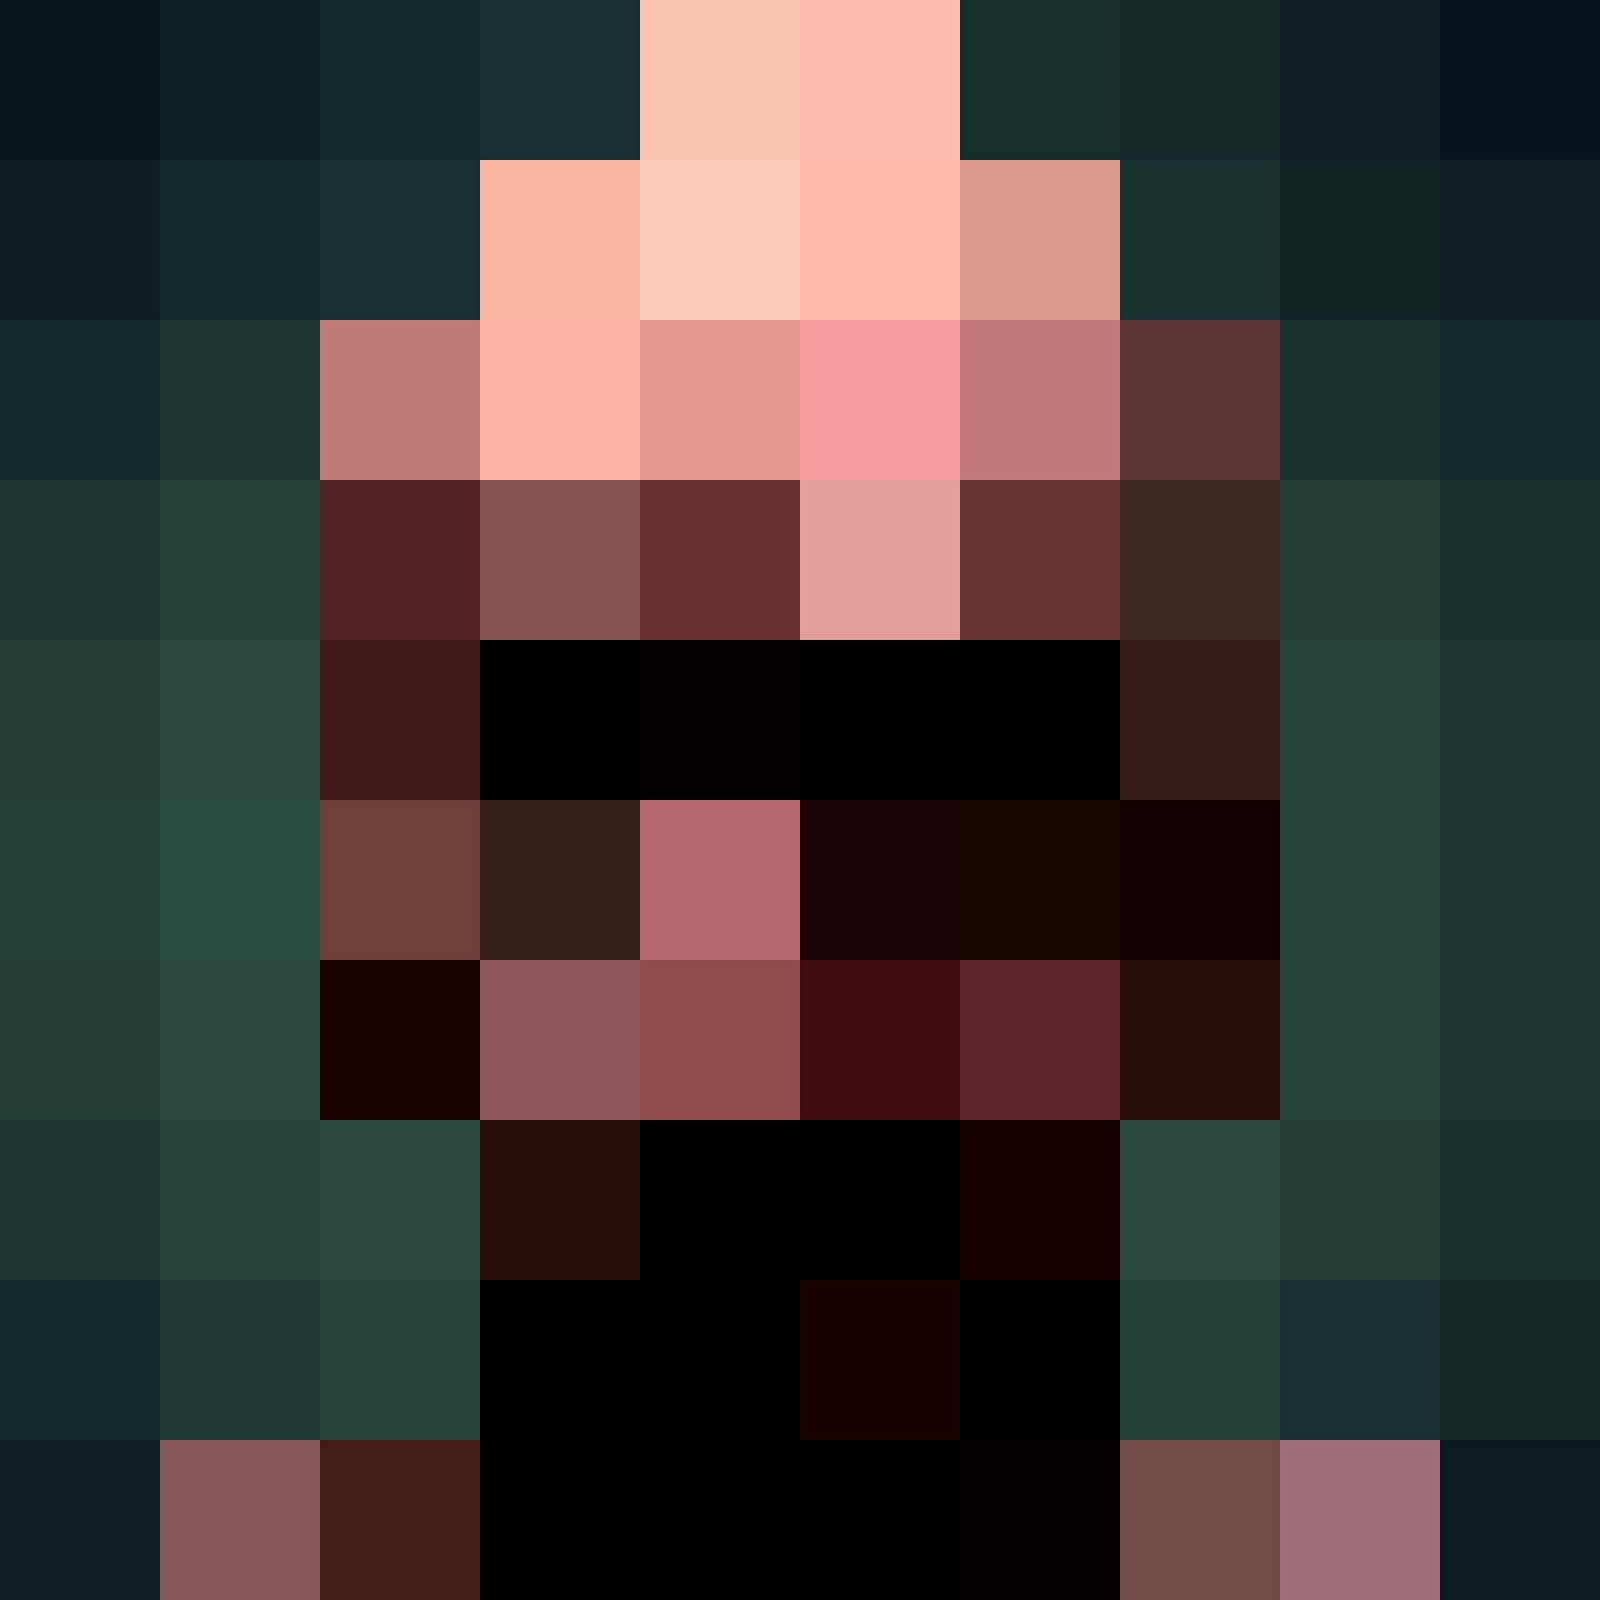 Vector illustration of Adult anonymous pixel face